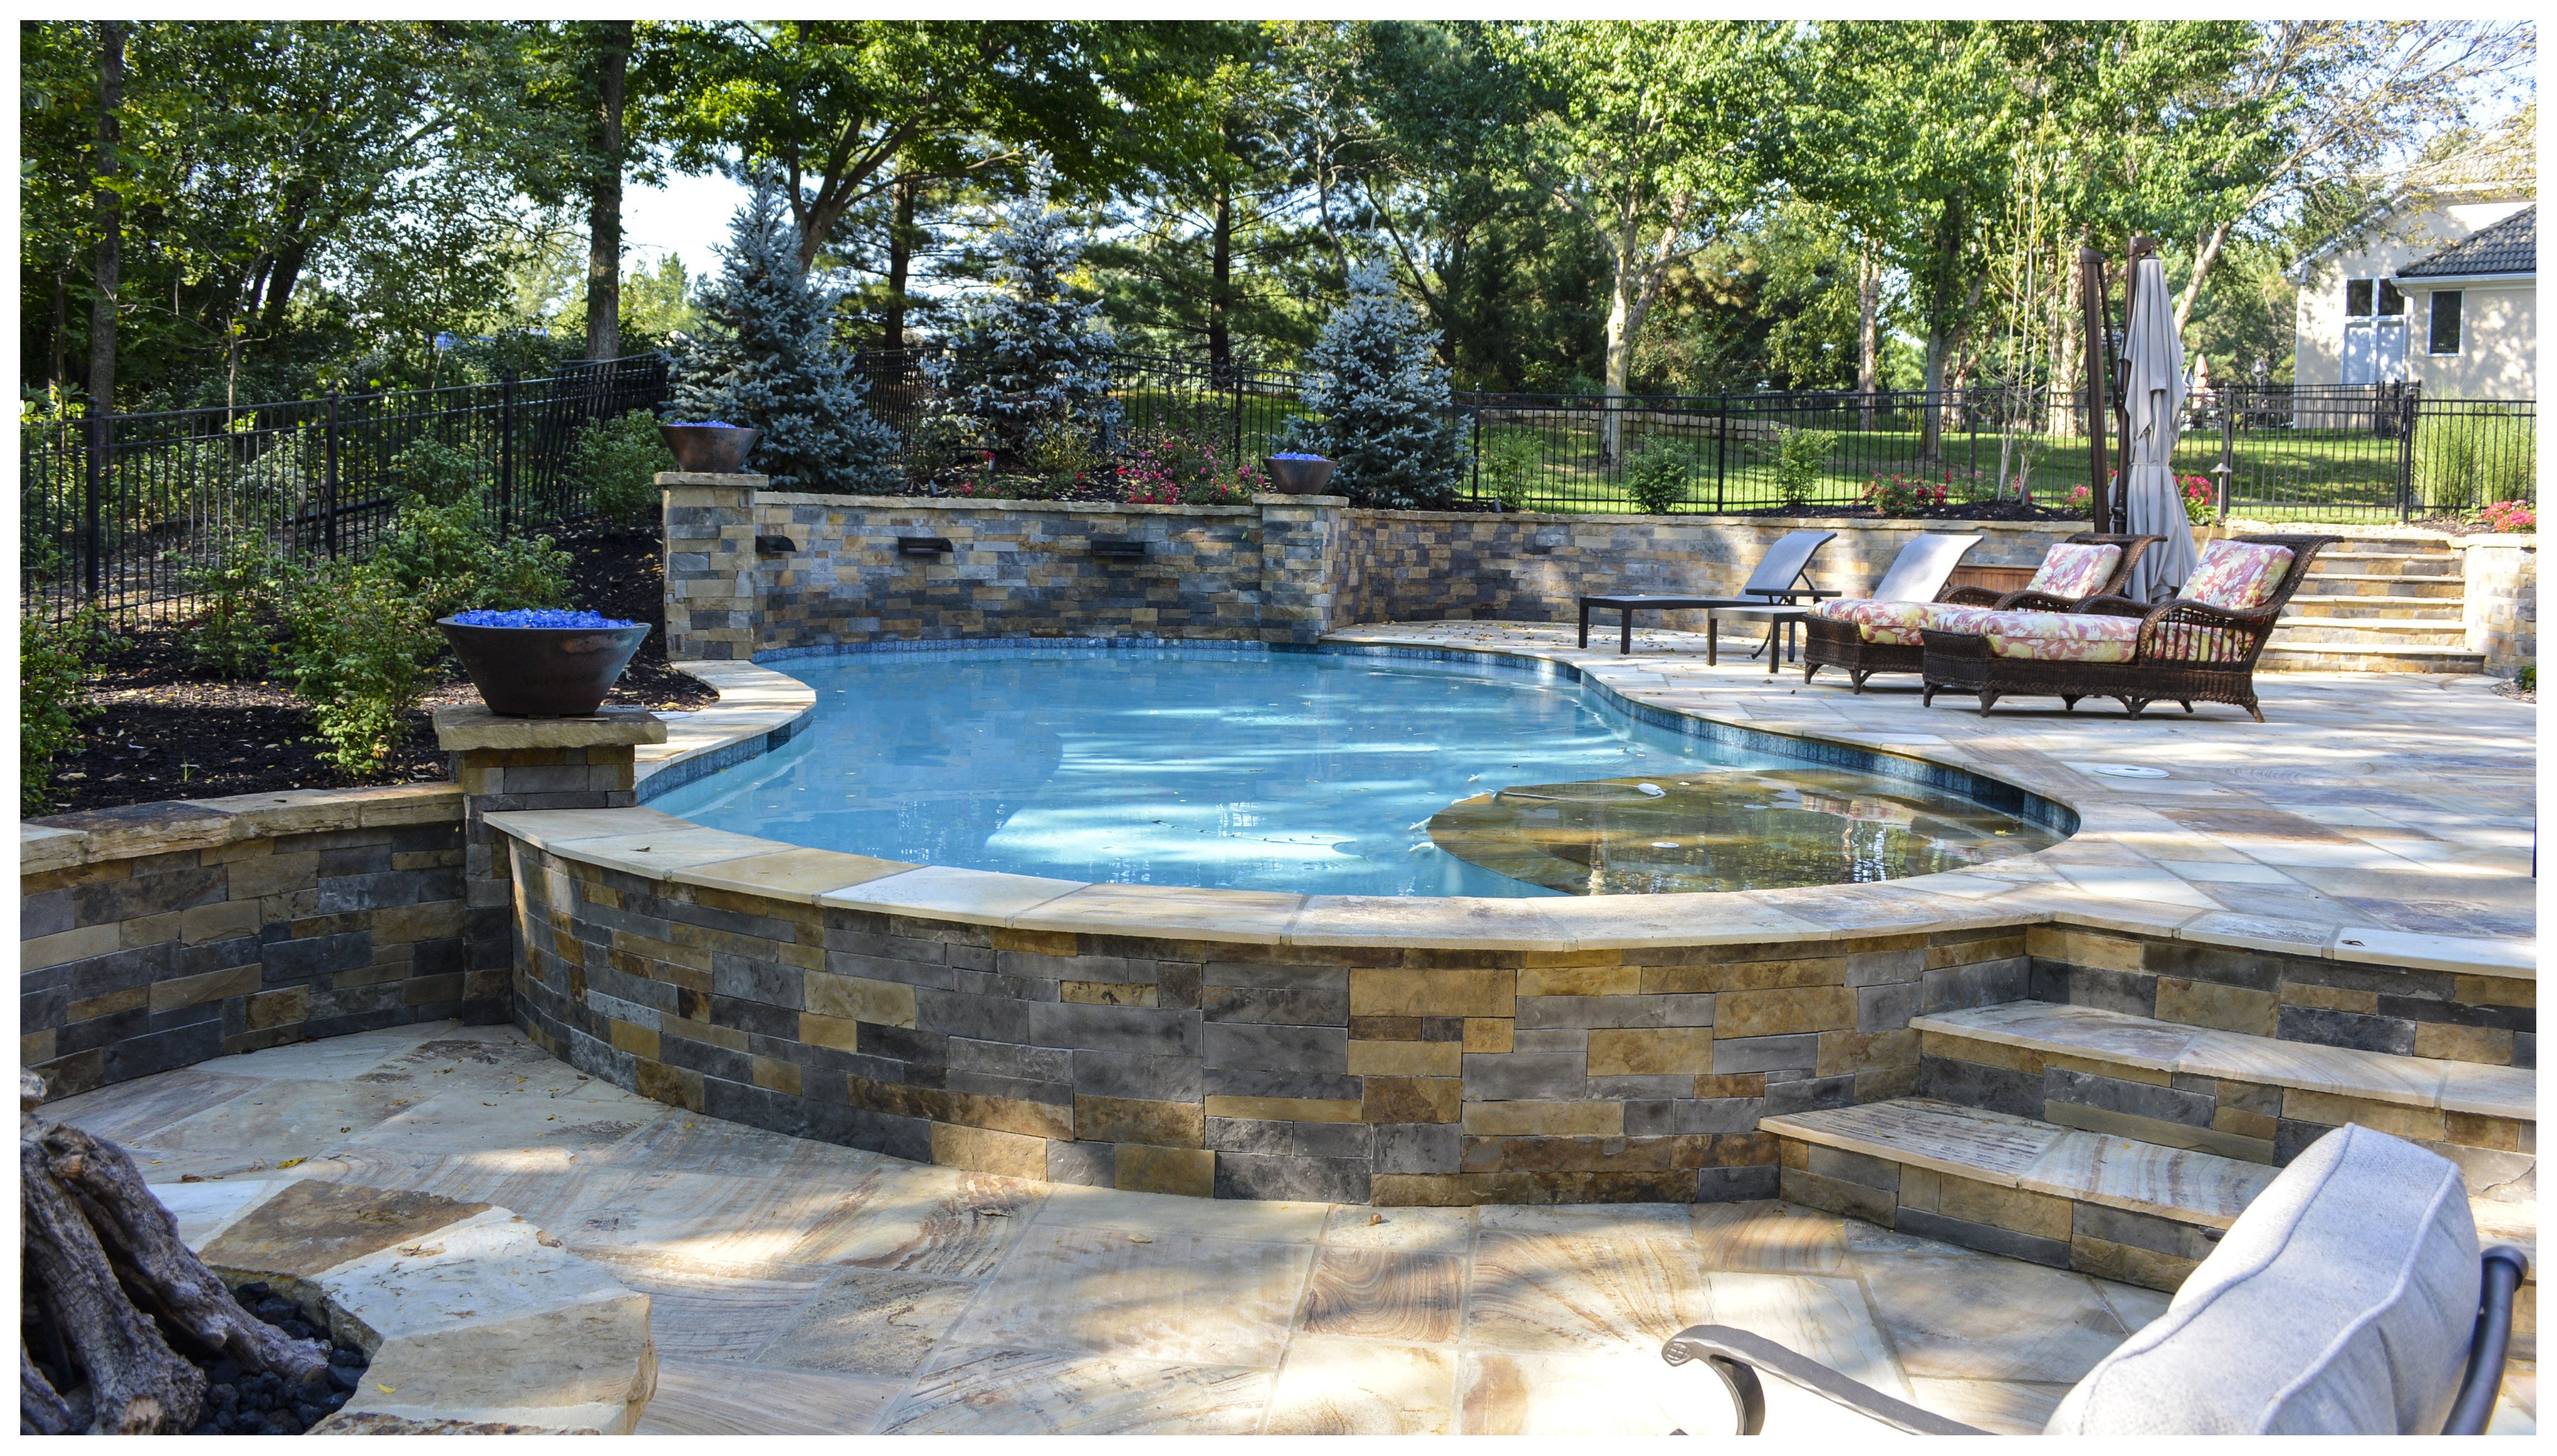 Freeform gunite pool with sun ledge and sheer descent waterfalls